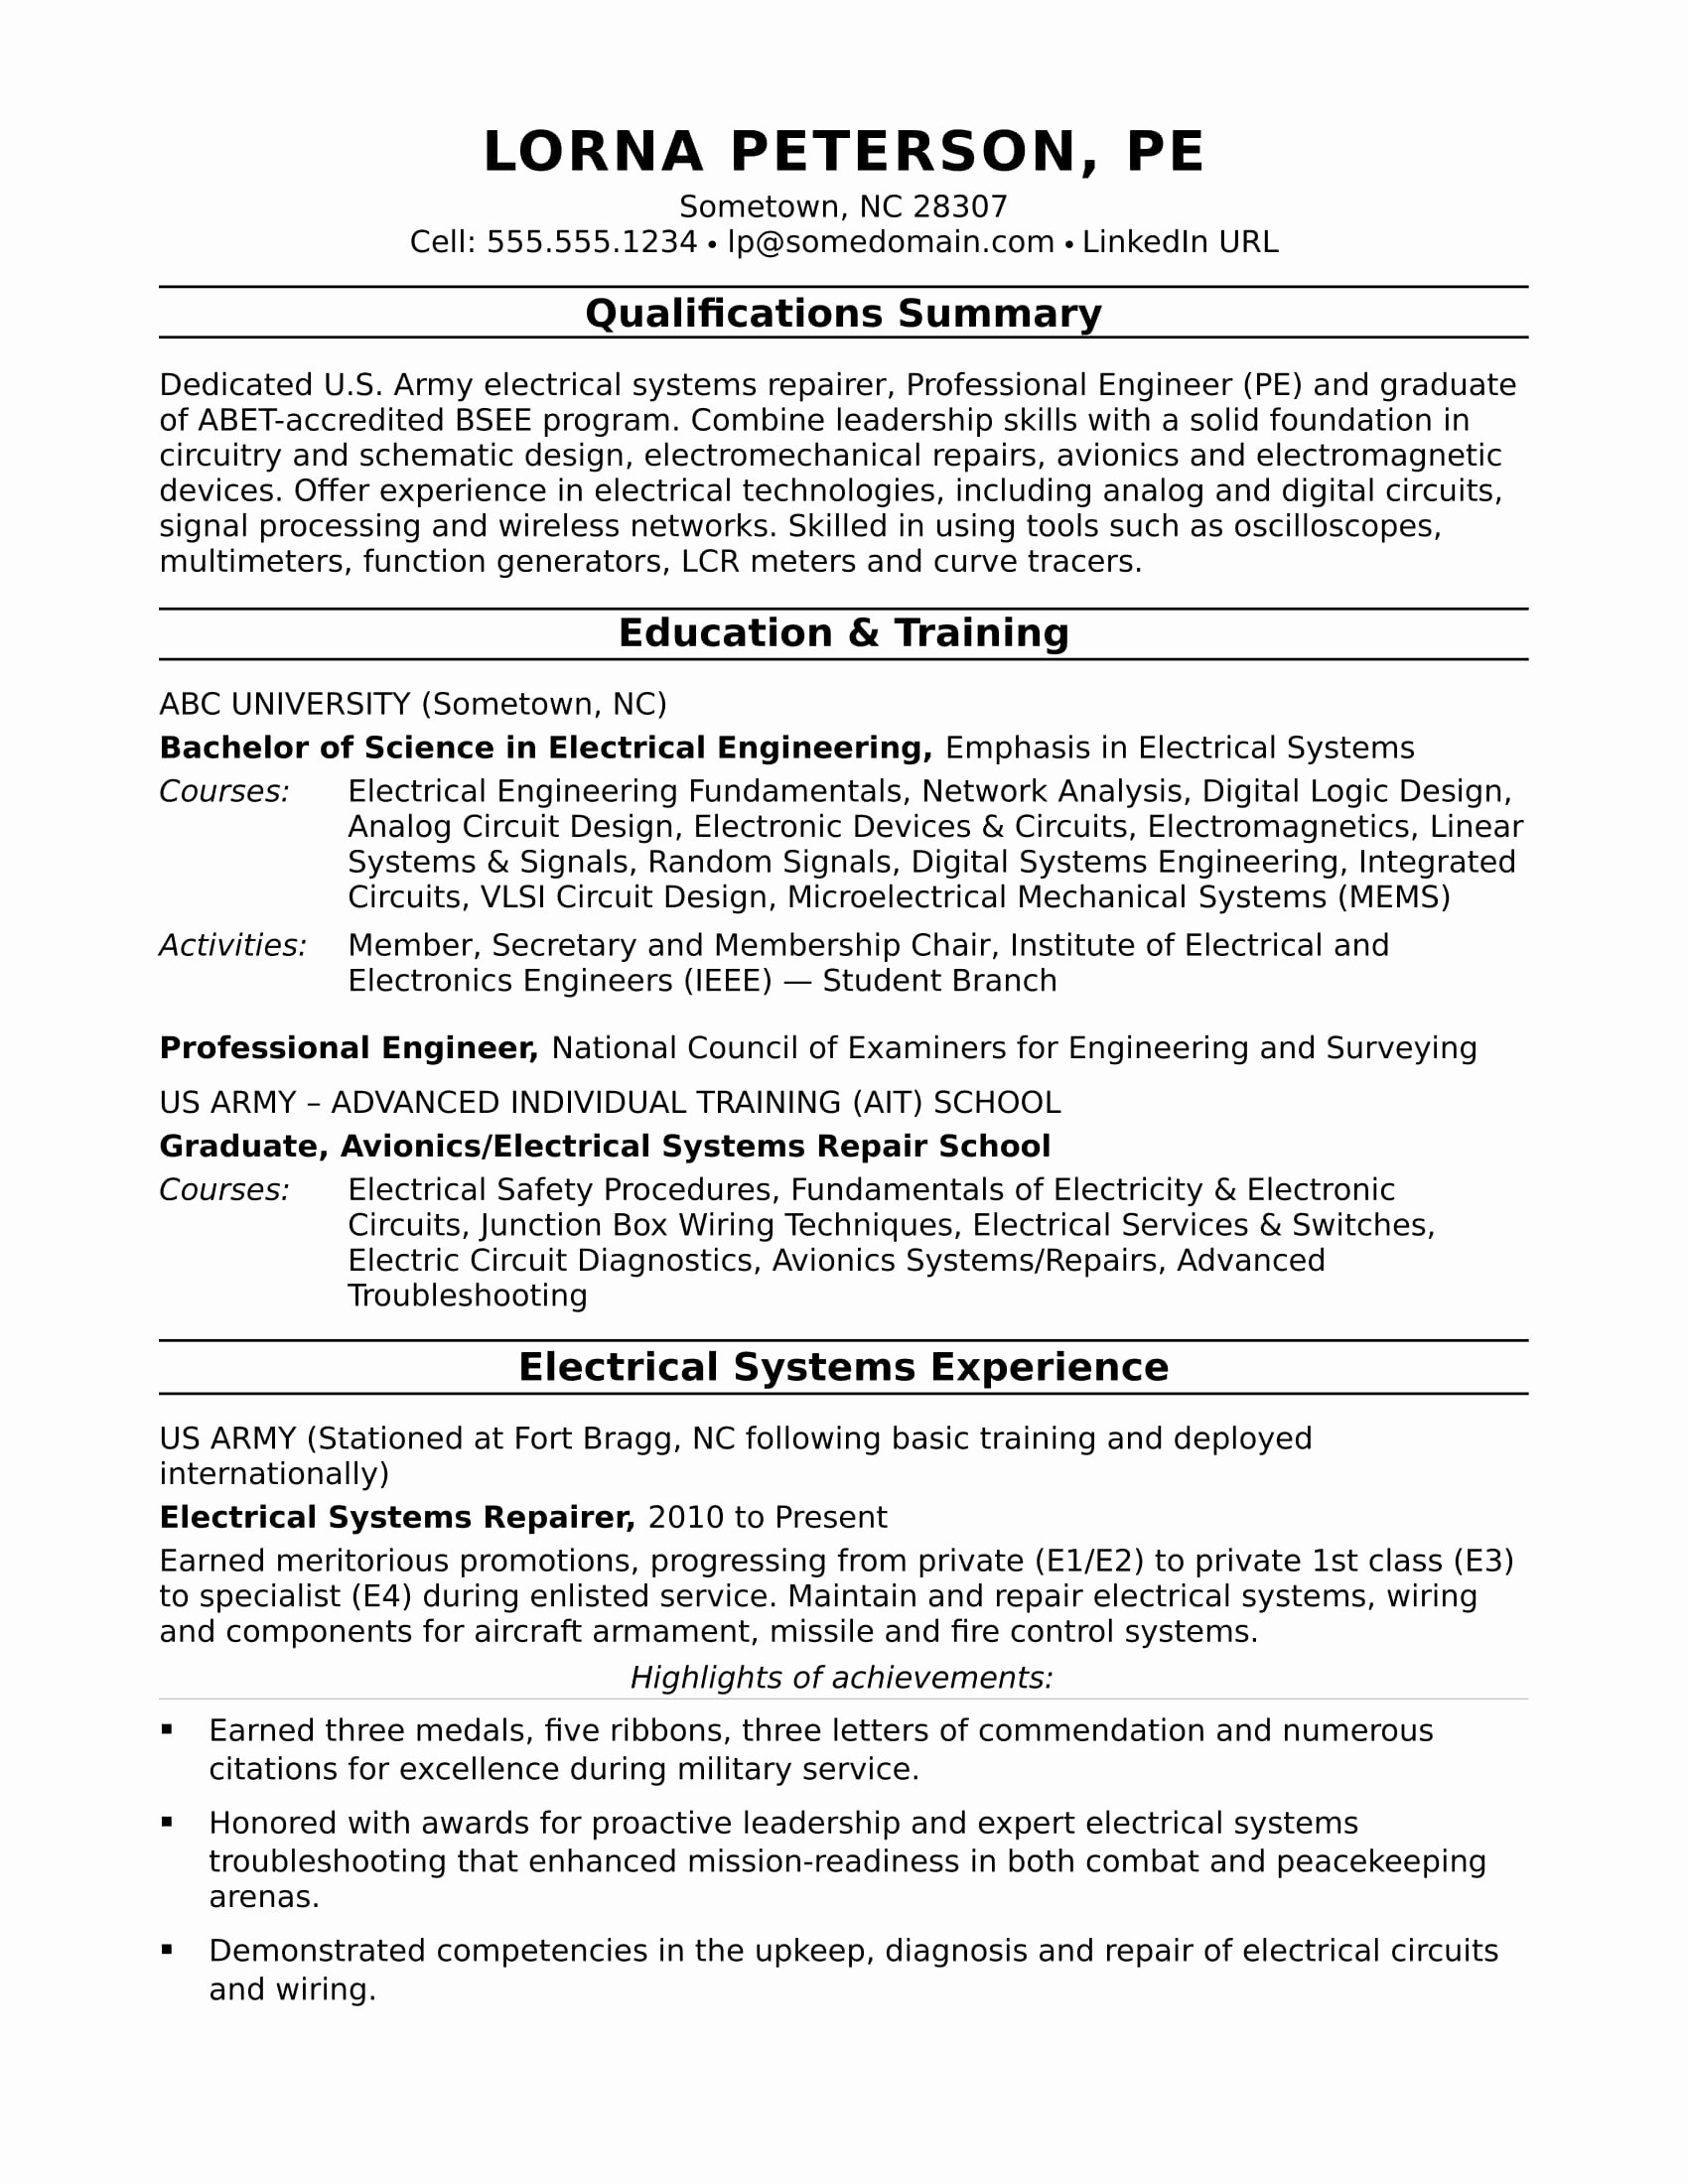 Electrical Engineer Resume Template Lovely Sample Resume for A Midlevel Electrical Engineer